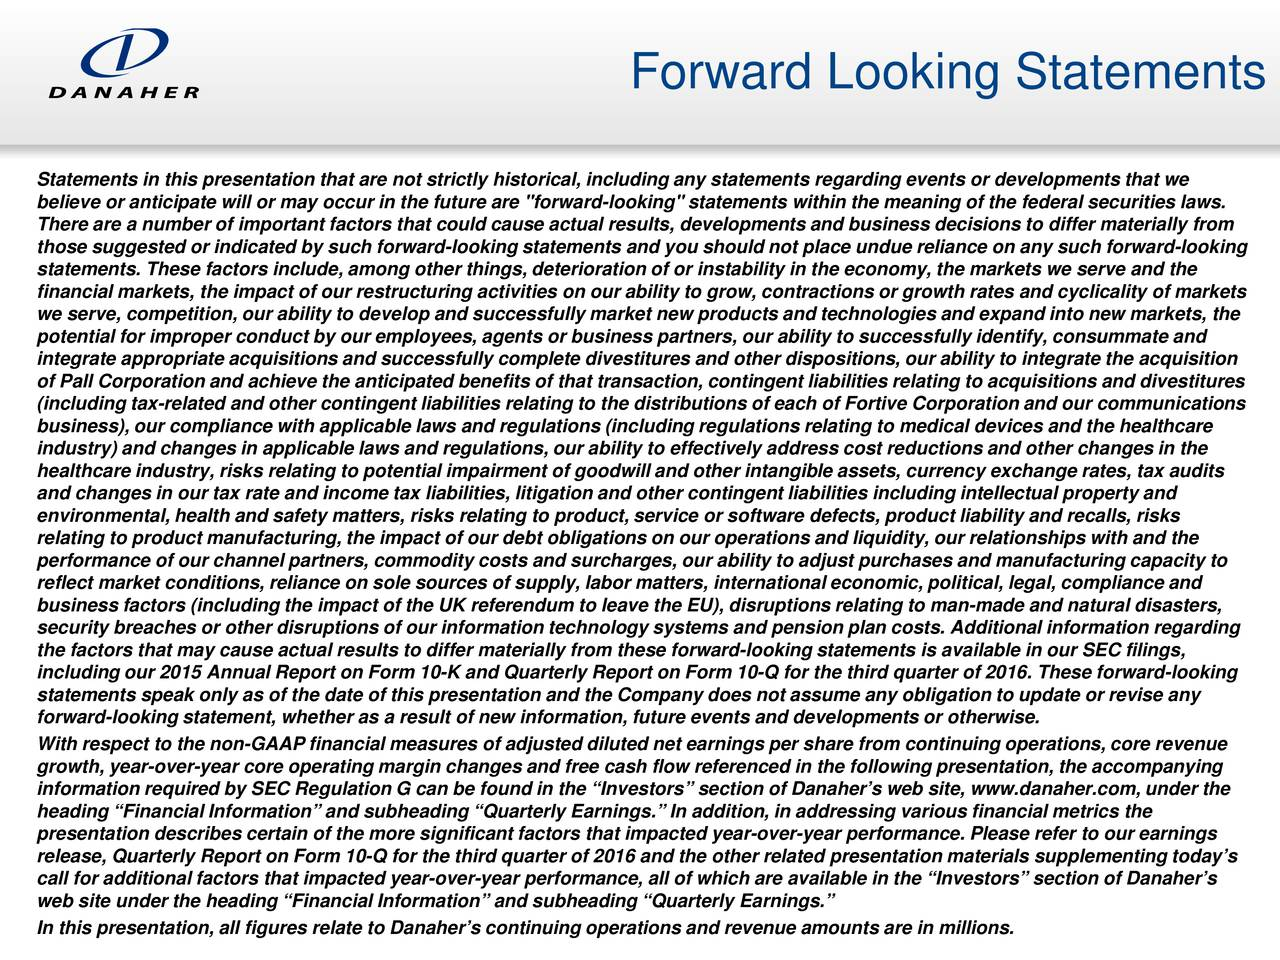 """Statements in this presentation that are not strictly historical, including any statements regarding events or developments that we believe or anticipate will or may occur in the future are """"forward-looking"""" statements within the meaning of the federal securities laws. There are a number of important factors that could cause actual results, developments and business decisions to differ mater ailly from those suggested or indicated by such forward-looking statements and you should not place undue reliance on any such forward-looking statements. These factors include, among other things, deterioration of or instability in the economy, the markets we serve andthe financial markets, the impact of our restructuring activities on our ability to grow, contractions or growth rates and cyclicality of markets we serve, competition, our ability to develop and successfully market new products and technologies and expand into new markets,the potential for improper conduct by our employees, agents or business partners, our ability to successfully identify, consummate and integrate appropriate acquisitions and successfully complete divestitures and other dispositions, our ability to integrate the acquisition of Pall Corporation and achieve the anticipated benefits of that transaction, contingent liabilities relating to acquisitionsand divestitures (including tax-related and other contingent liabilities relating to the distributions of each of Fortive Corporation and our communications business), our compliance with applicable laws and regulations (including regulations relating to medical devices and the healthcare industry) and changes in applicable laws and regulations, our ability to effectively address cost reductions and other changesn i the healthcare industry, risks relating to potential impairment of goodwill and other intangible assets, currency exchange rates,tax audits and changes in our tax rate and income tax liabilities, litigation and other contingent liabilities in"""